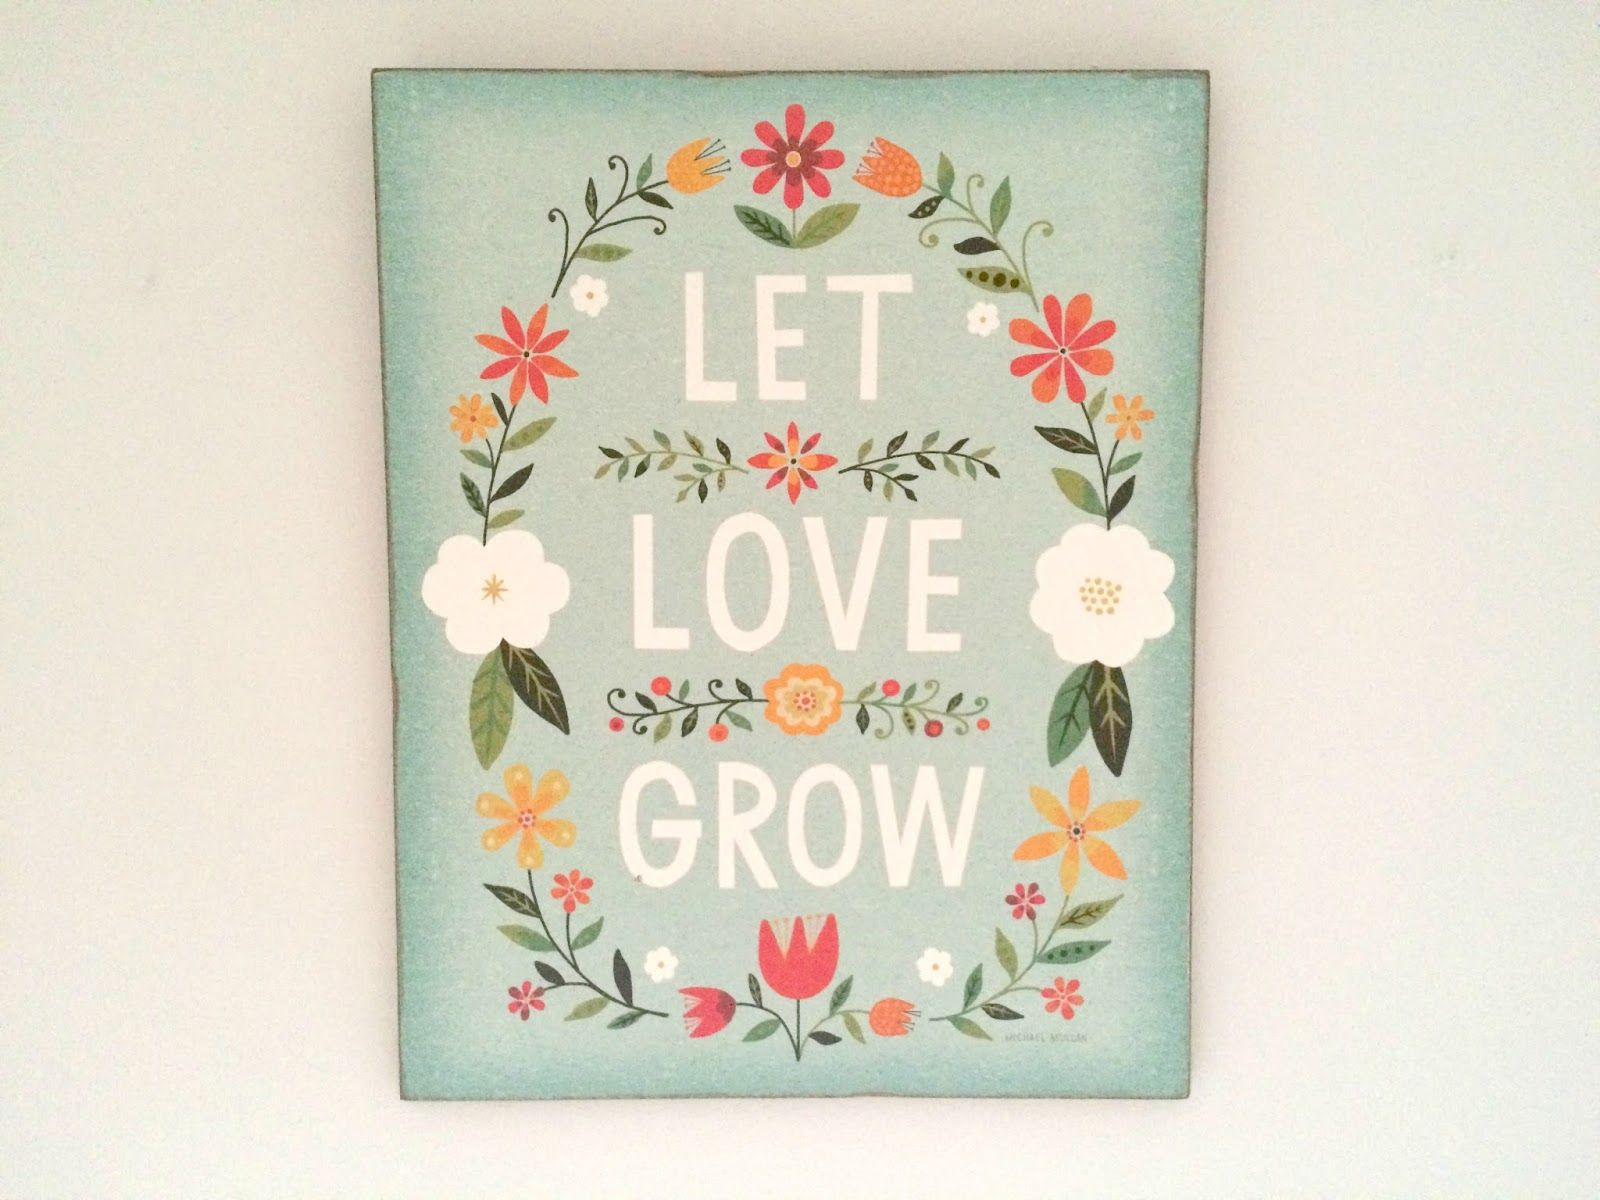 Let love grow, 3 simple ways you can make the world a better place, wellbeing, mindfulness